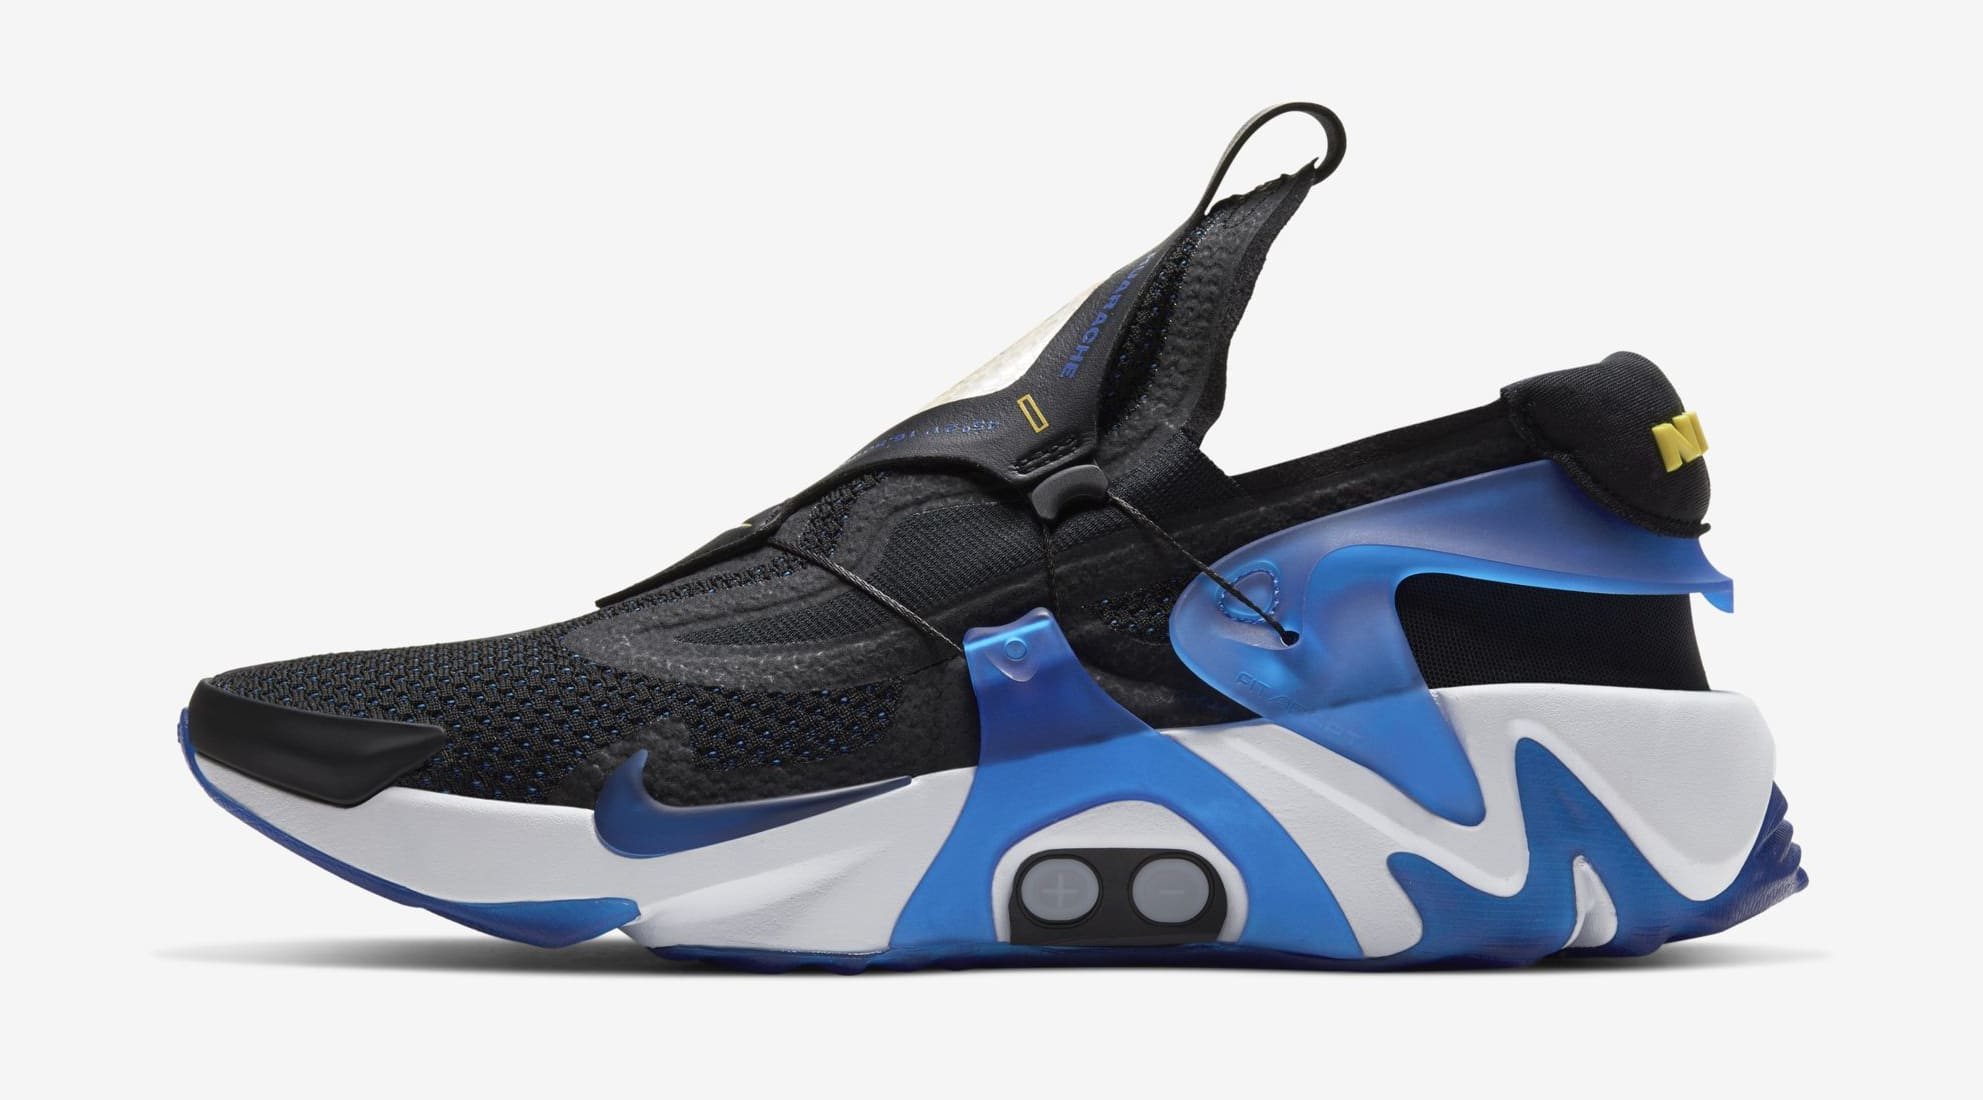 Nike's Auto-Lacing Adapt Huarache Revealed In New Colorway: Photos